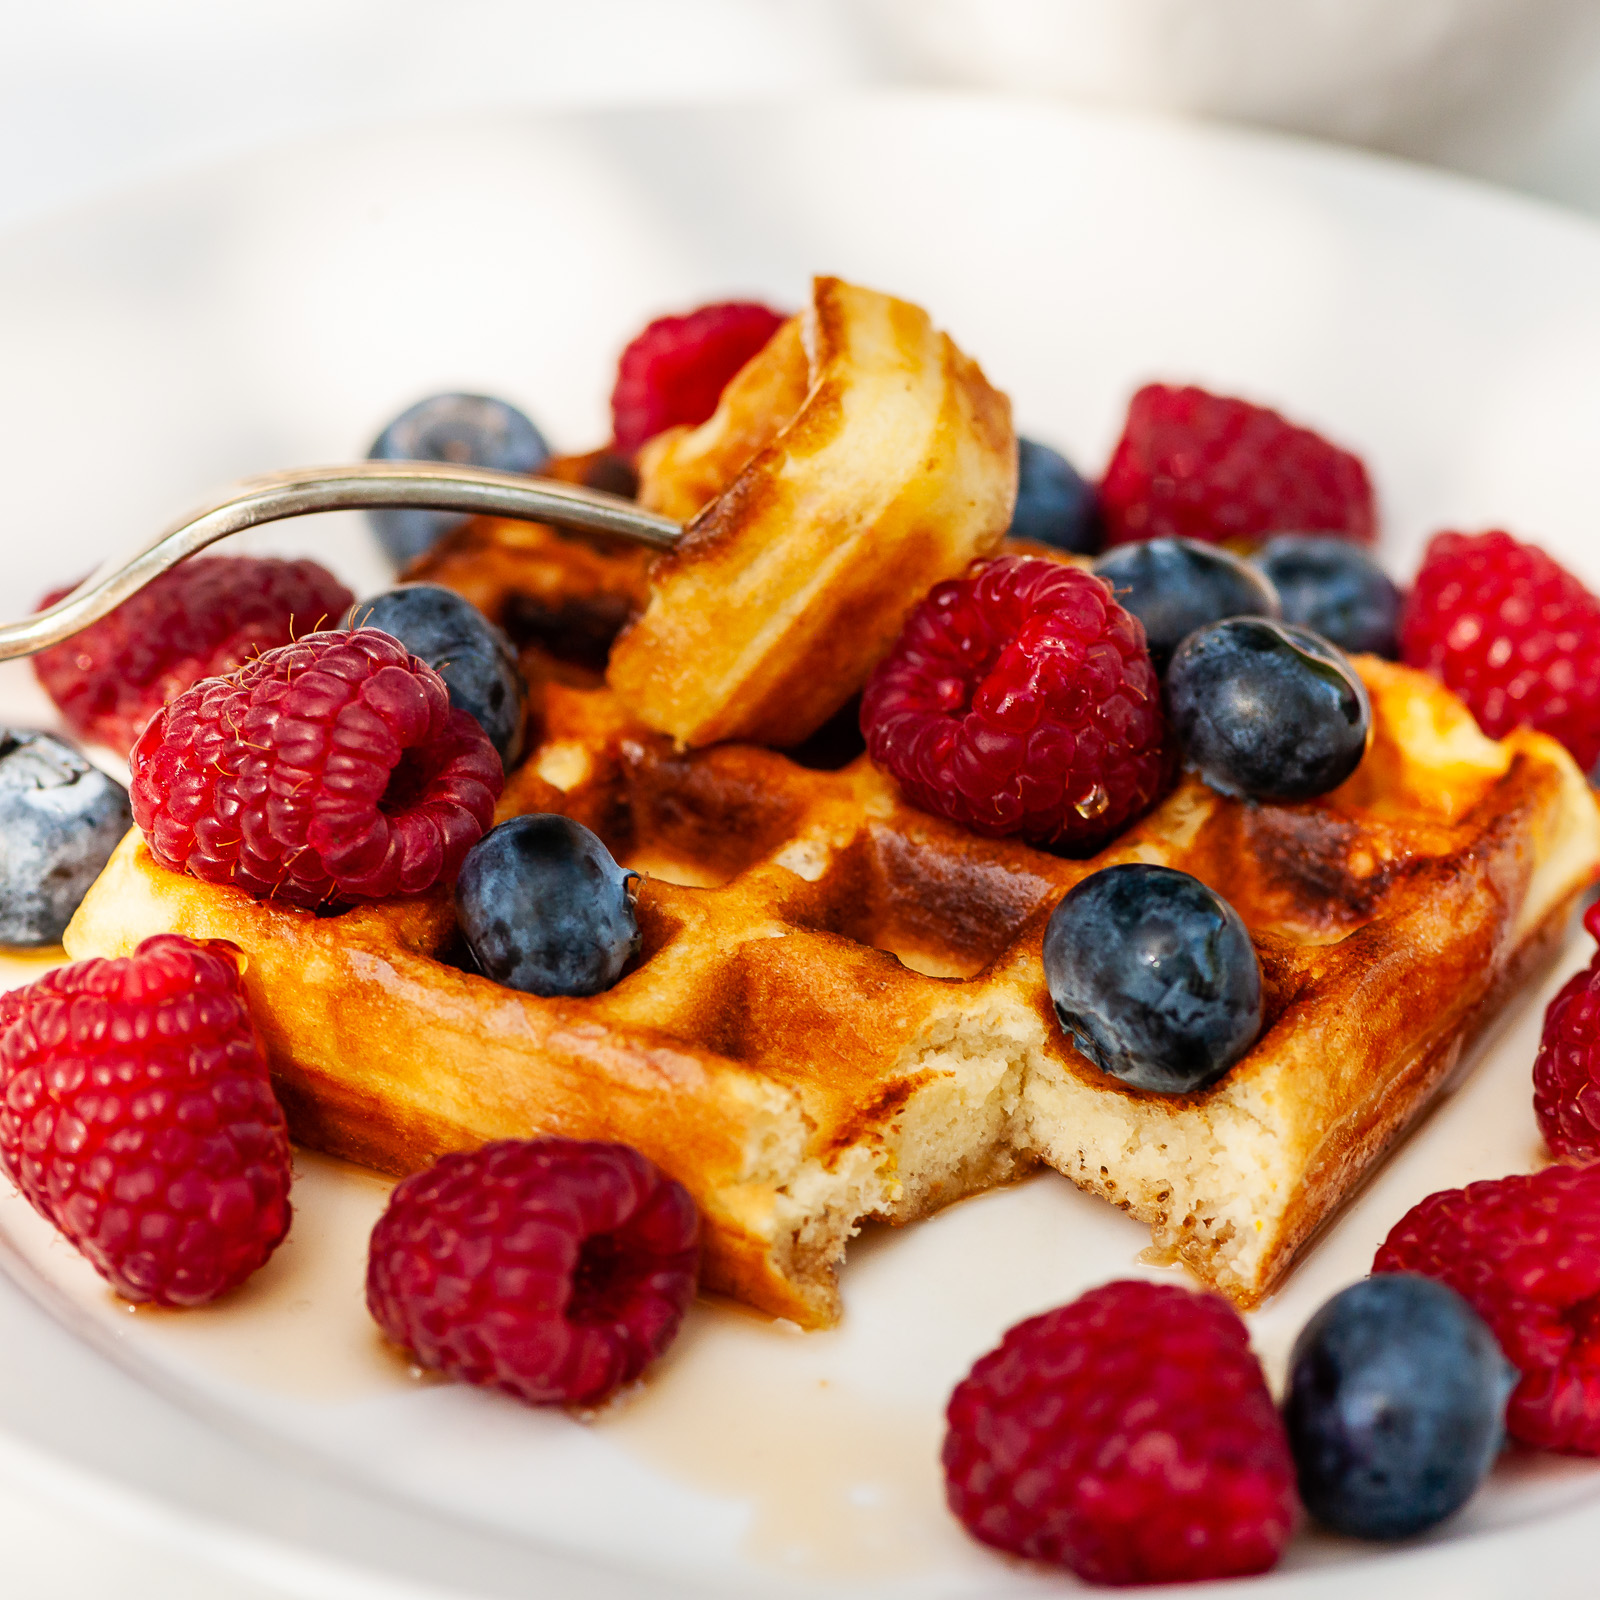 Breakfast outdoors on a beautiful summer's day. Home-made gluten free waffles with fresh fruit and maple syrup. Photography by Sue Todd Photography.